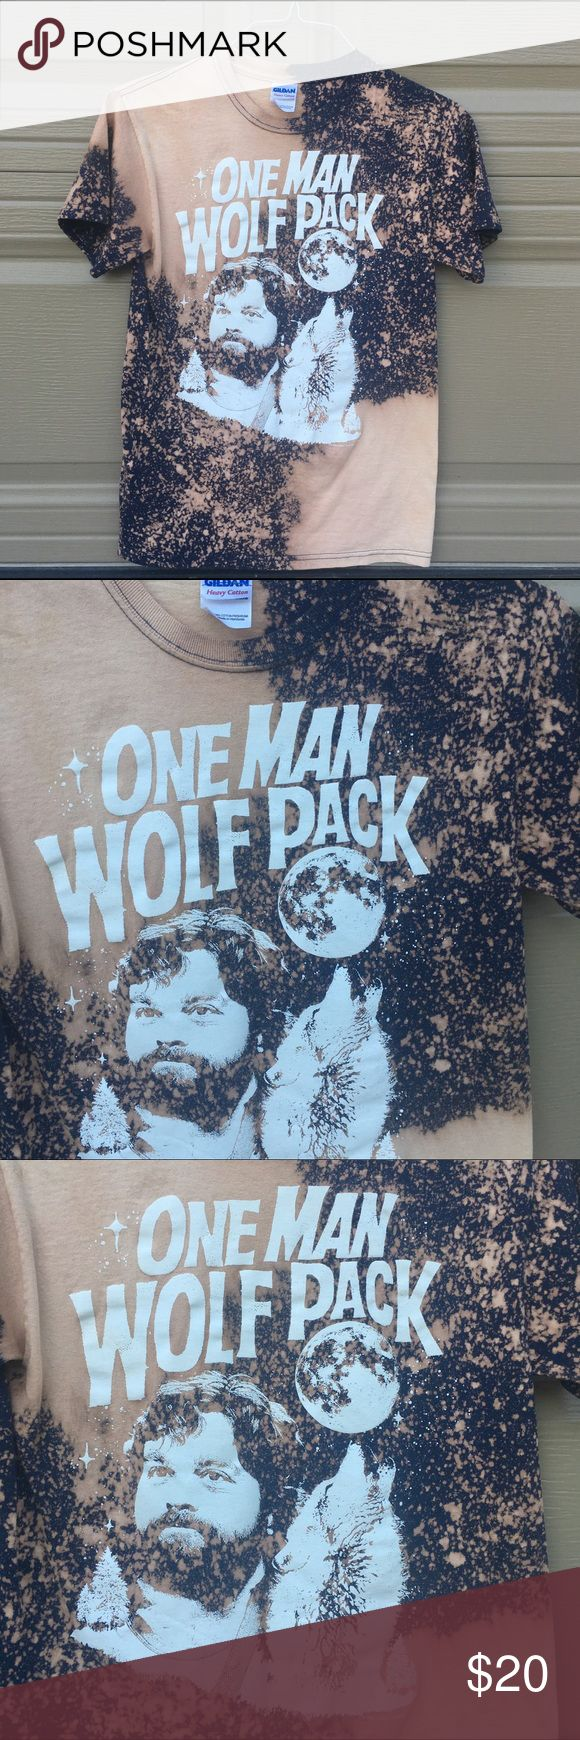 Bleached One Man Wolf Pack shirt Custom bleached by me! Men's size small. NOT ADIDAS. ONLY PUT THAT FOR LISTING PUBLICITY. adidas Shirts Tees - Short Sleeve